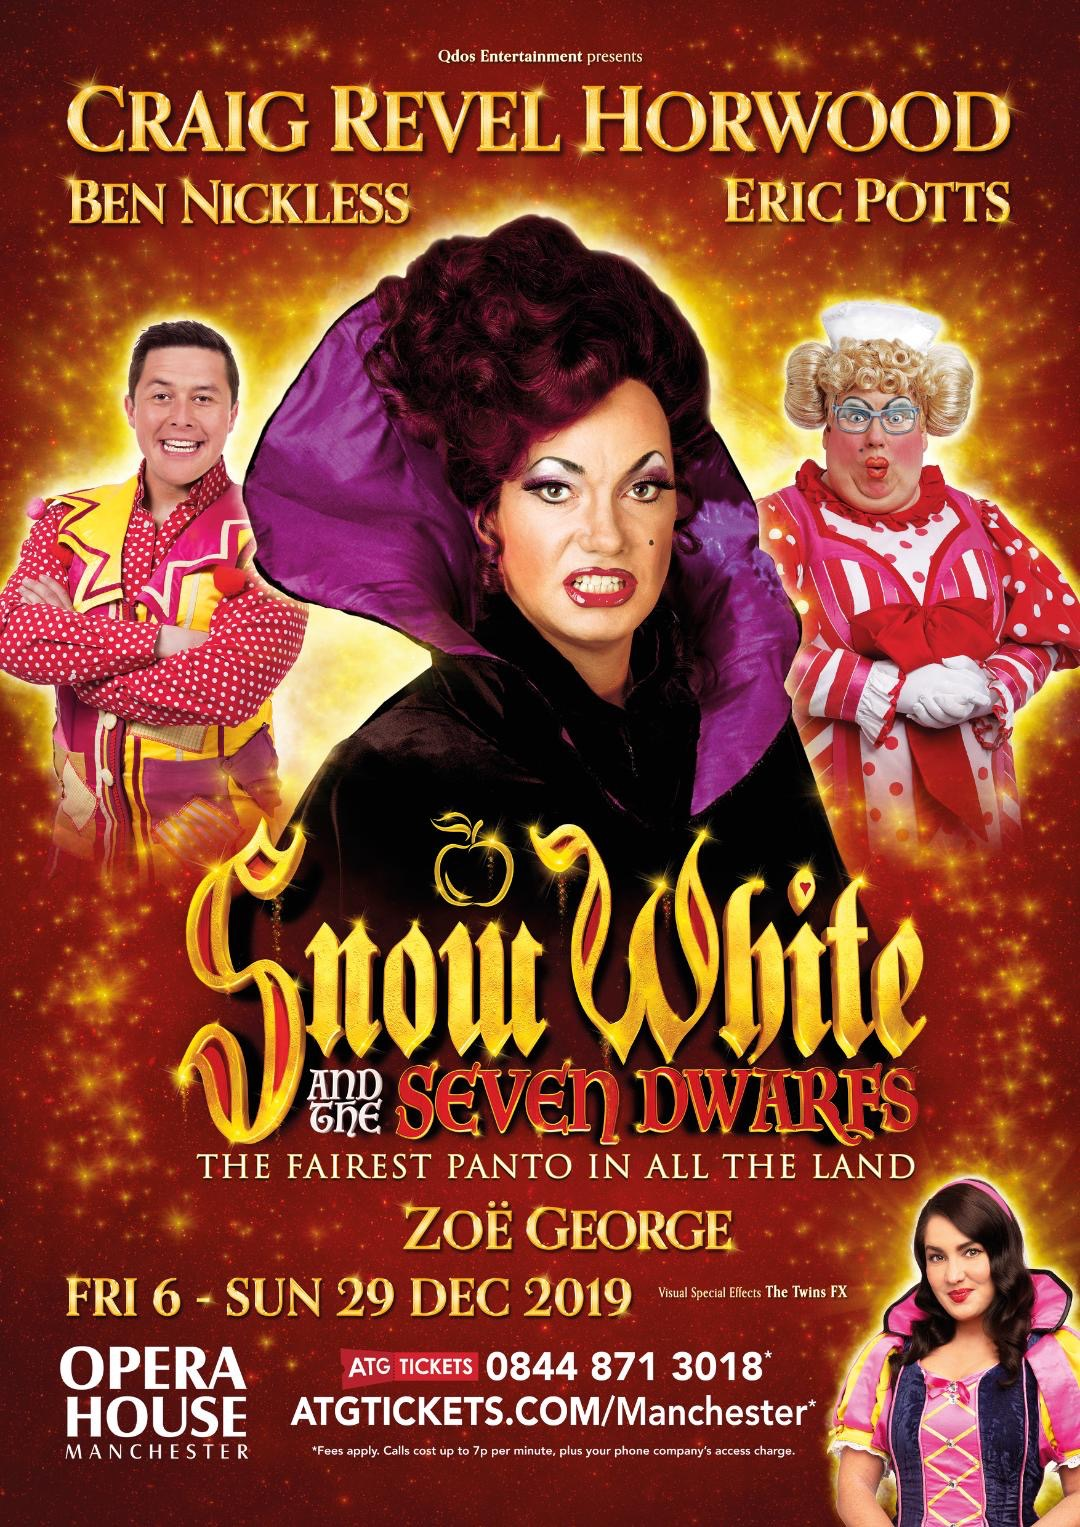 This is a Snow White 2019 leaflet